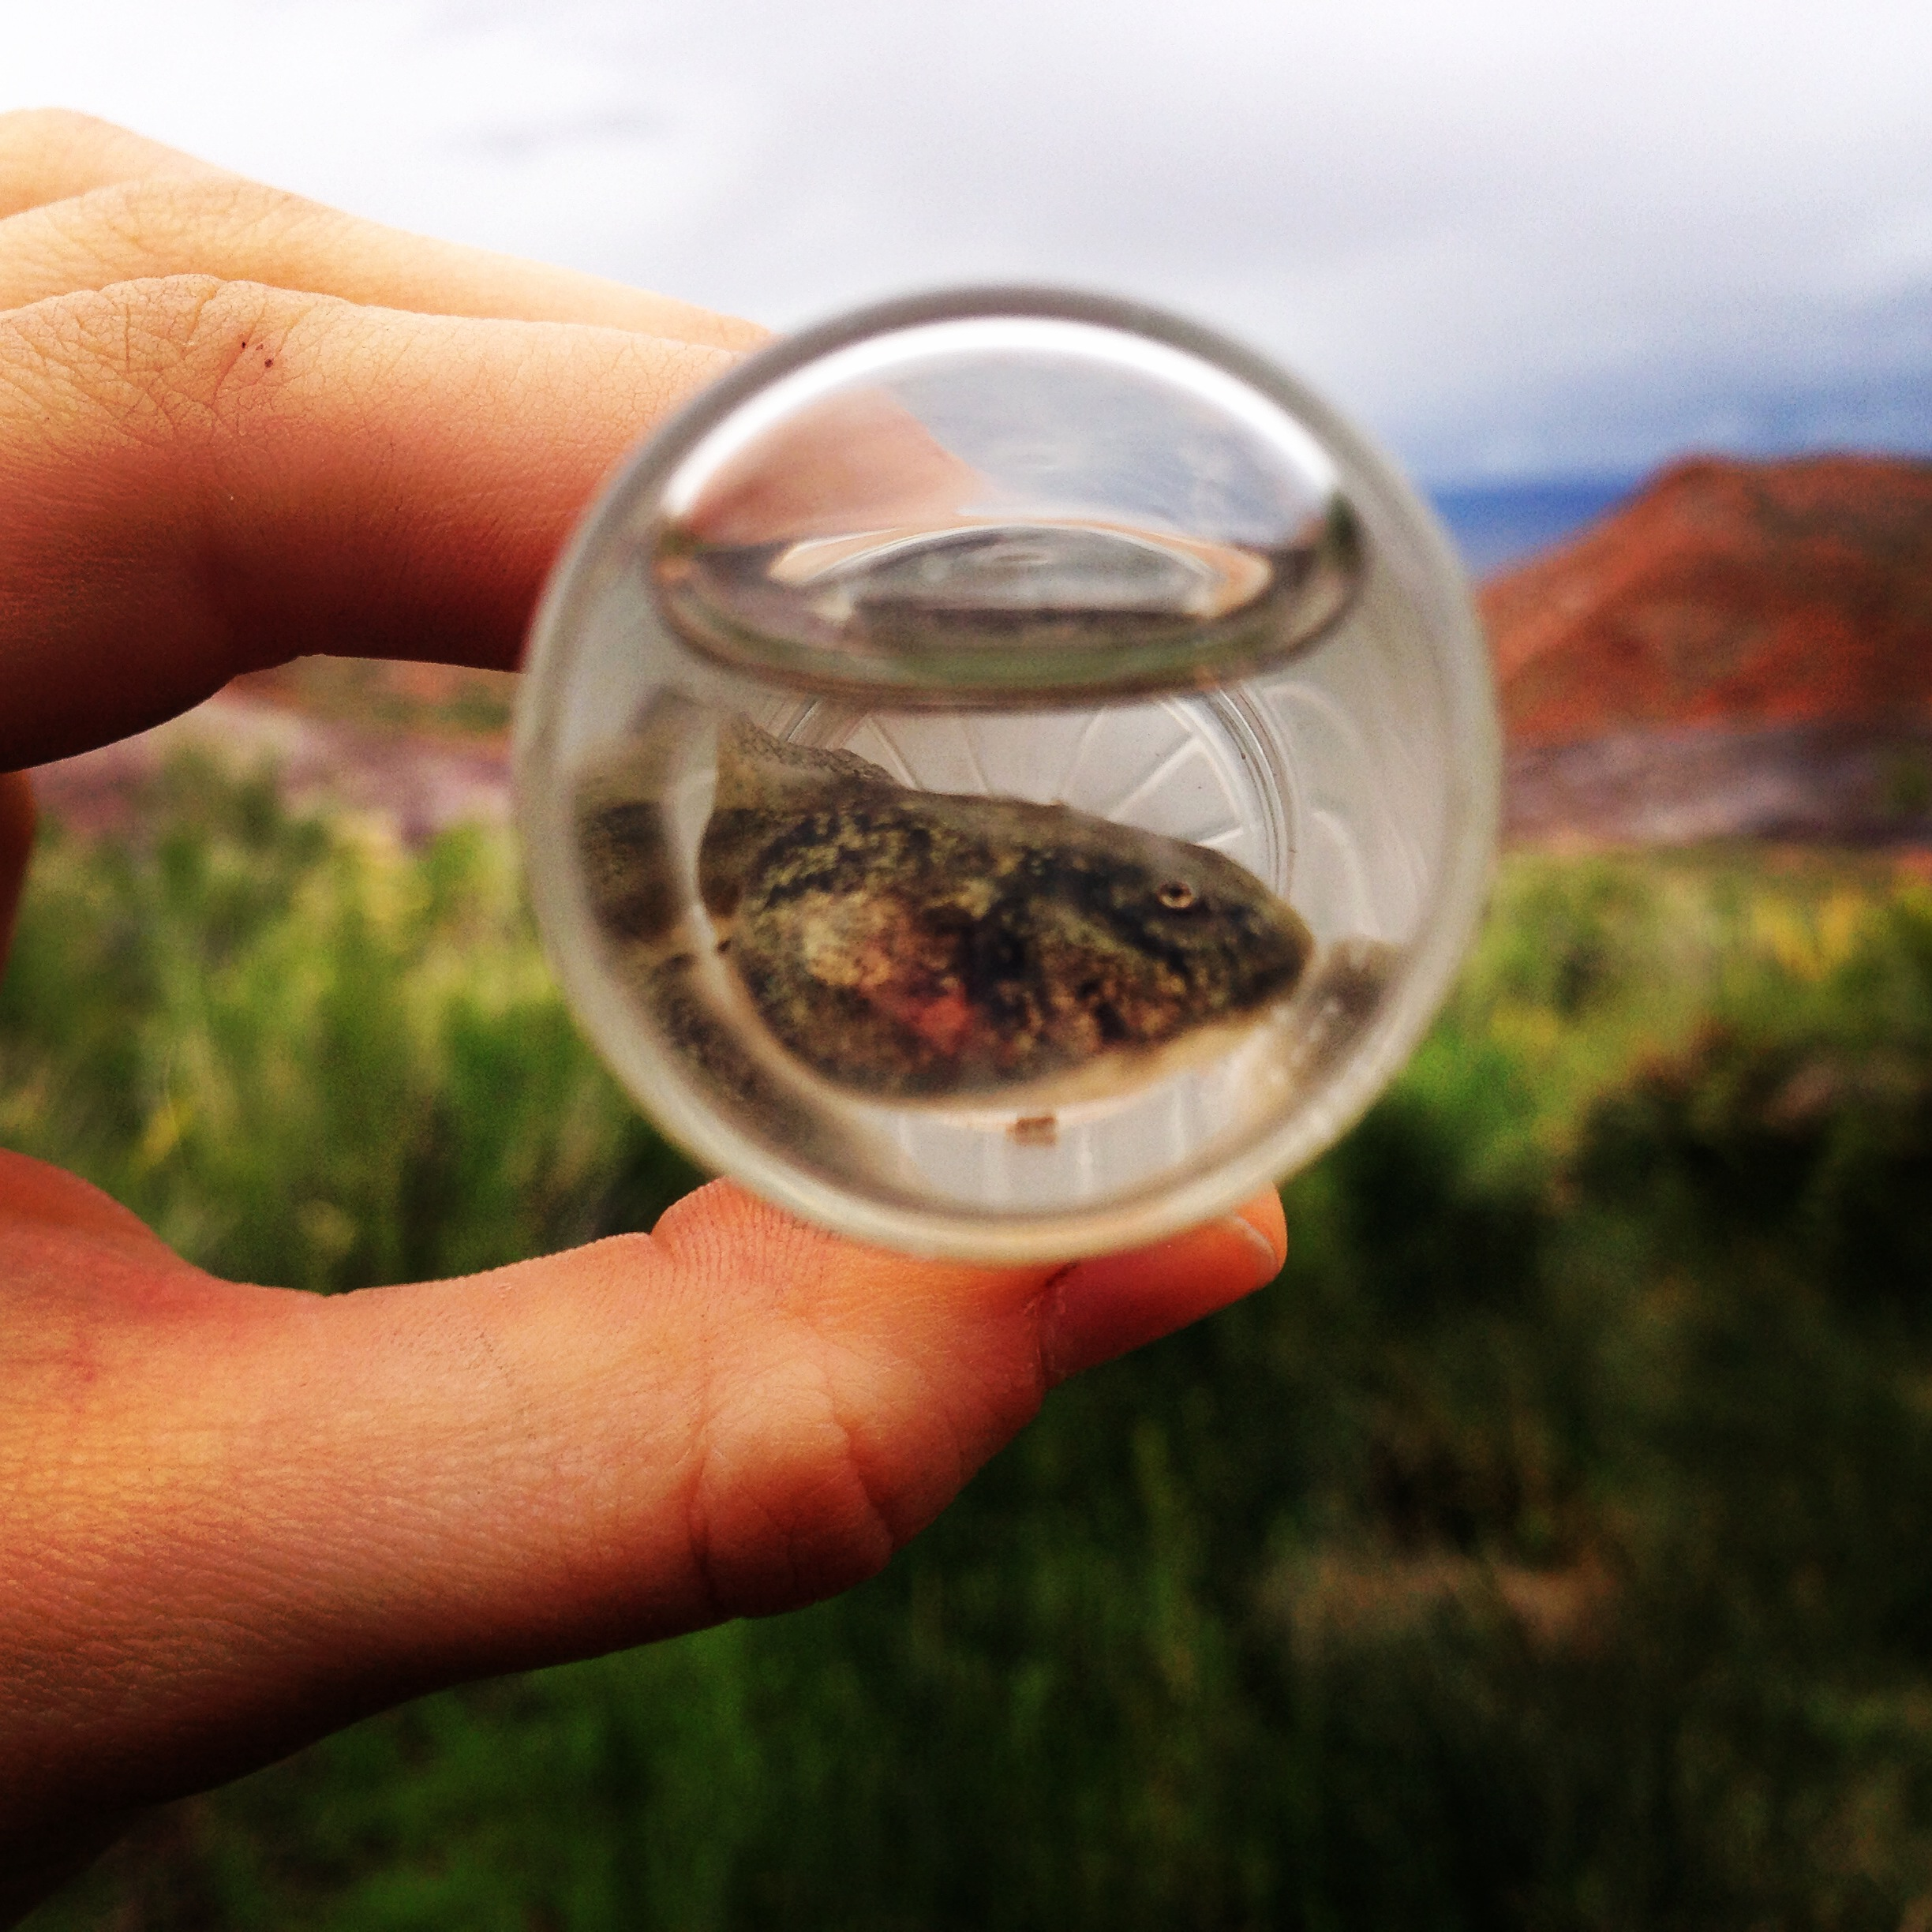 Leopard frog tadpoles thriving in springs near Vermilion Cliffs, Arizona. Photo by Molly Joyce.